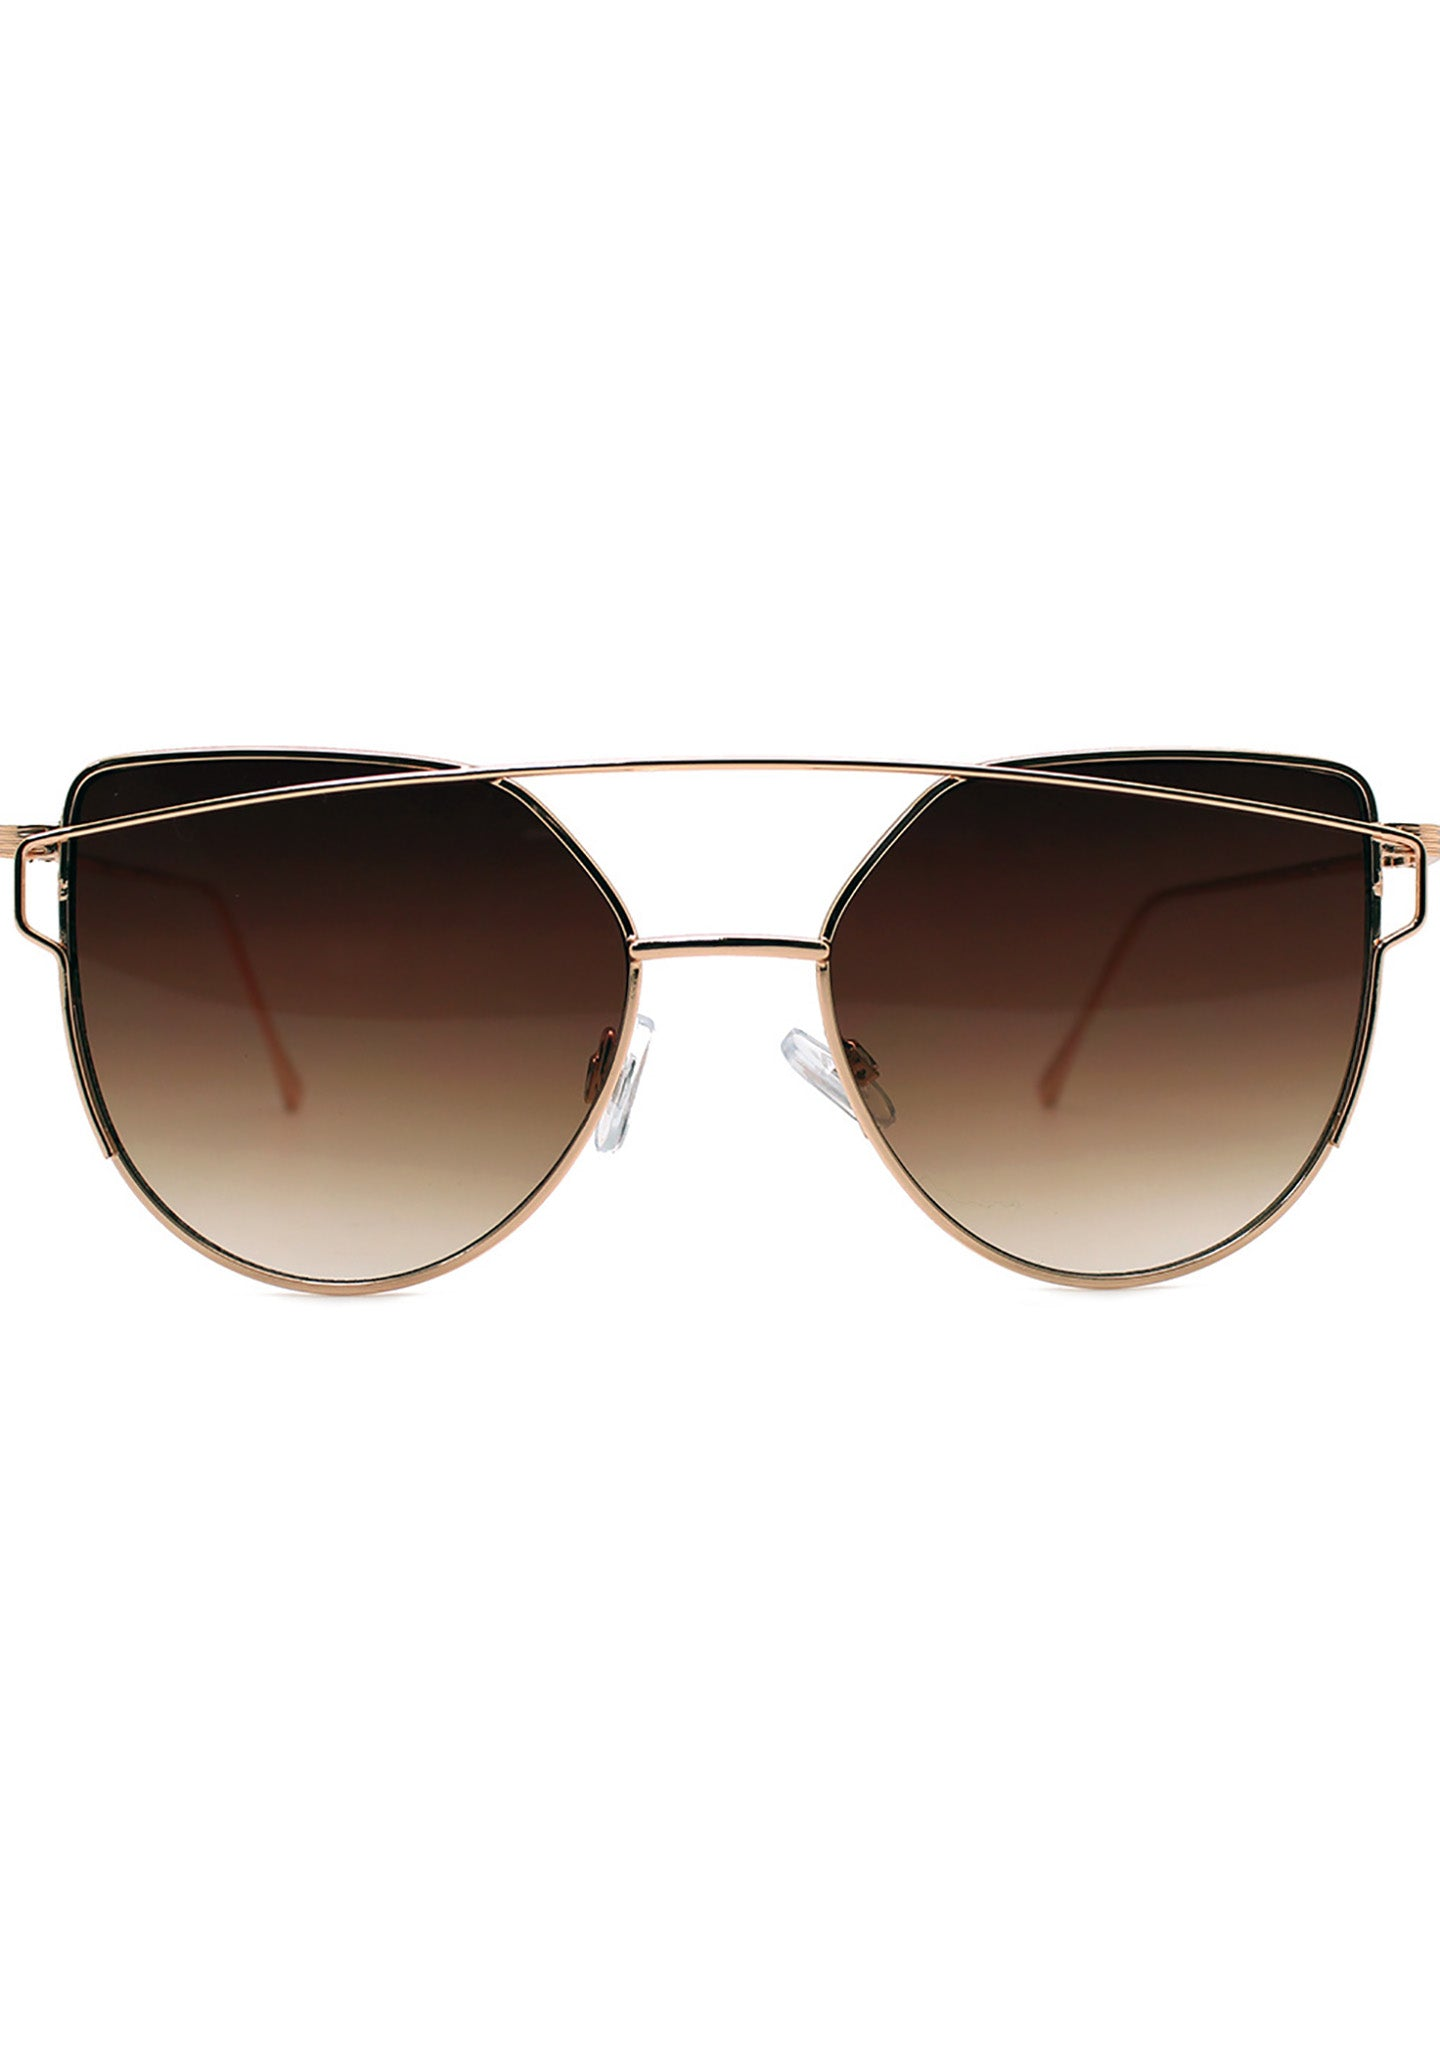 7 LUXE Starlet Sunglasses